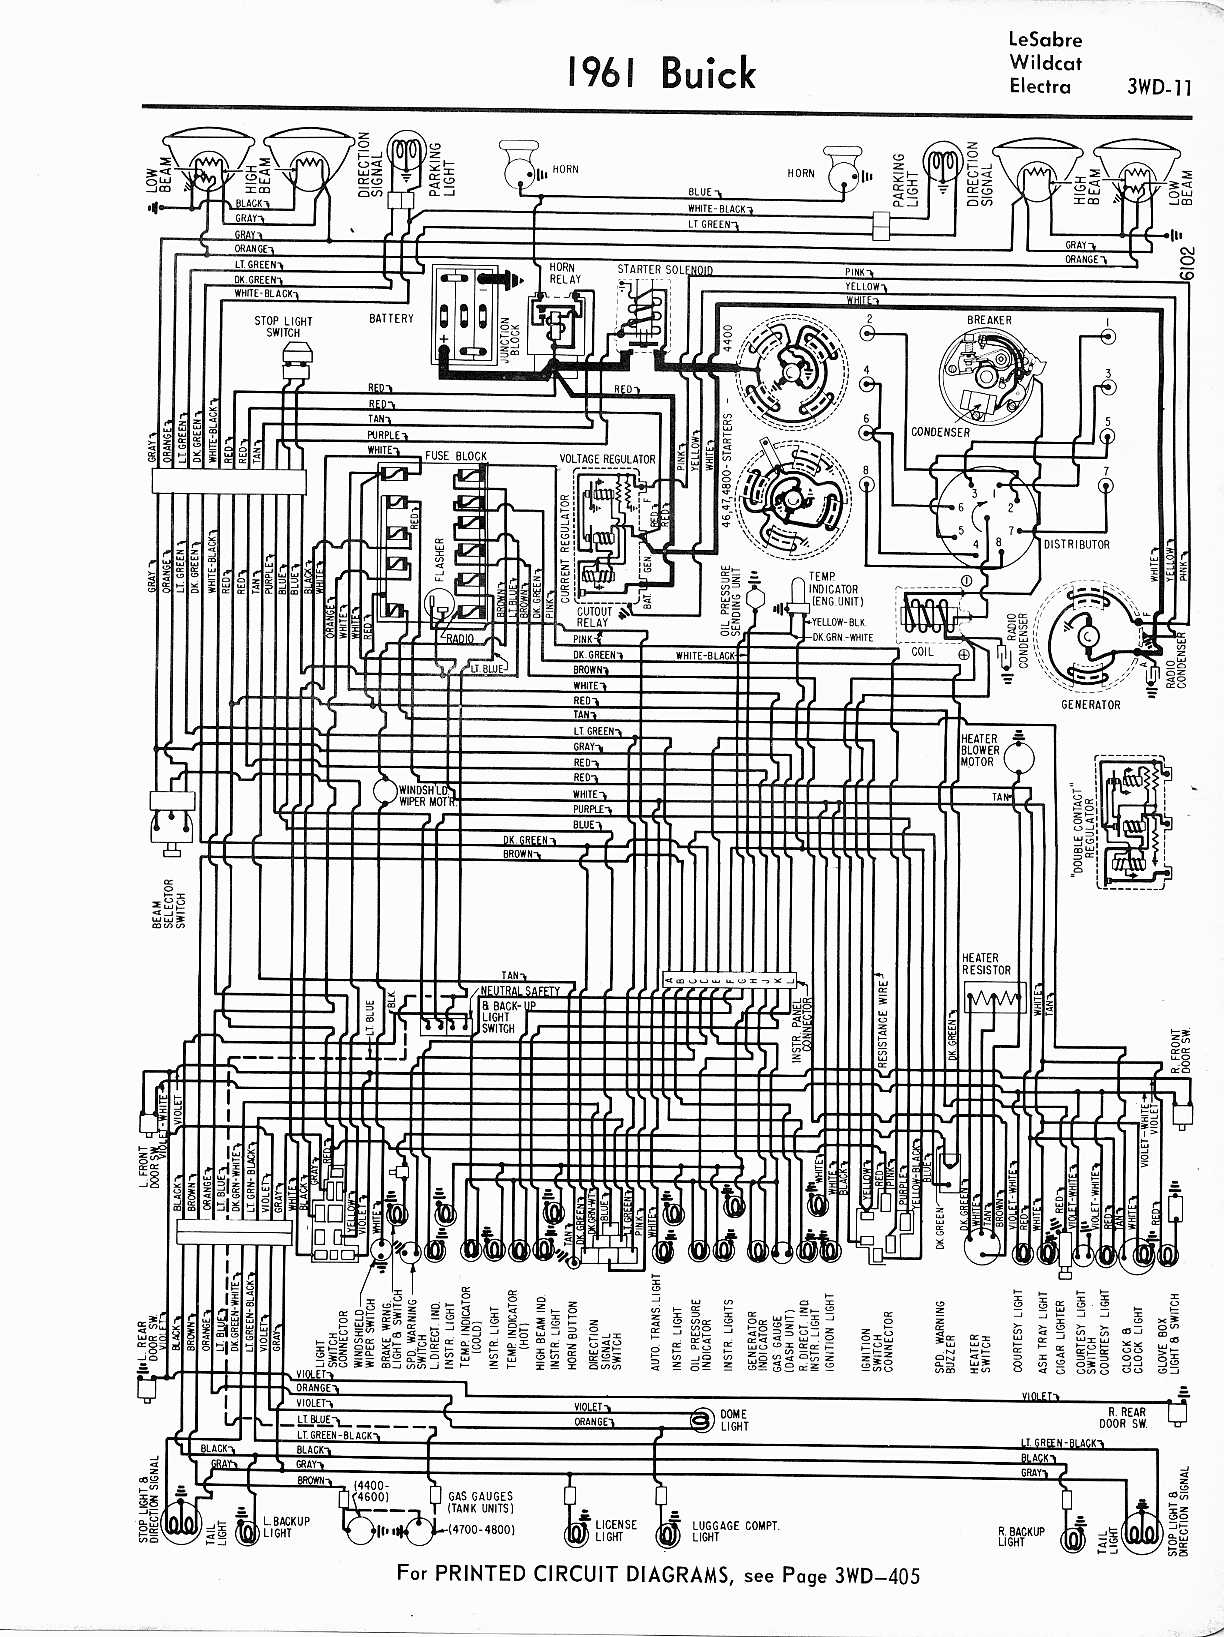 Buick Wiring Diagrams: 1957-1965 buick wiring diagrams free The Old Car Manual Project